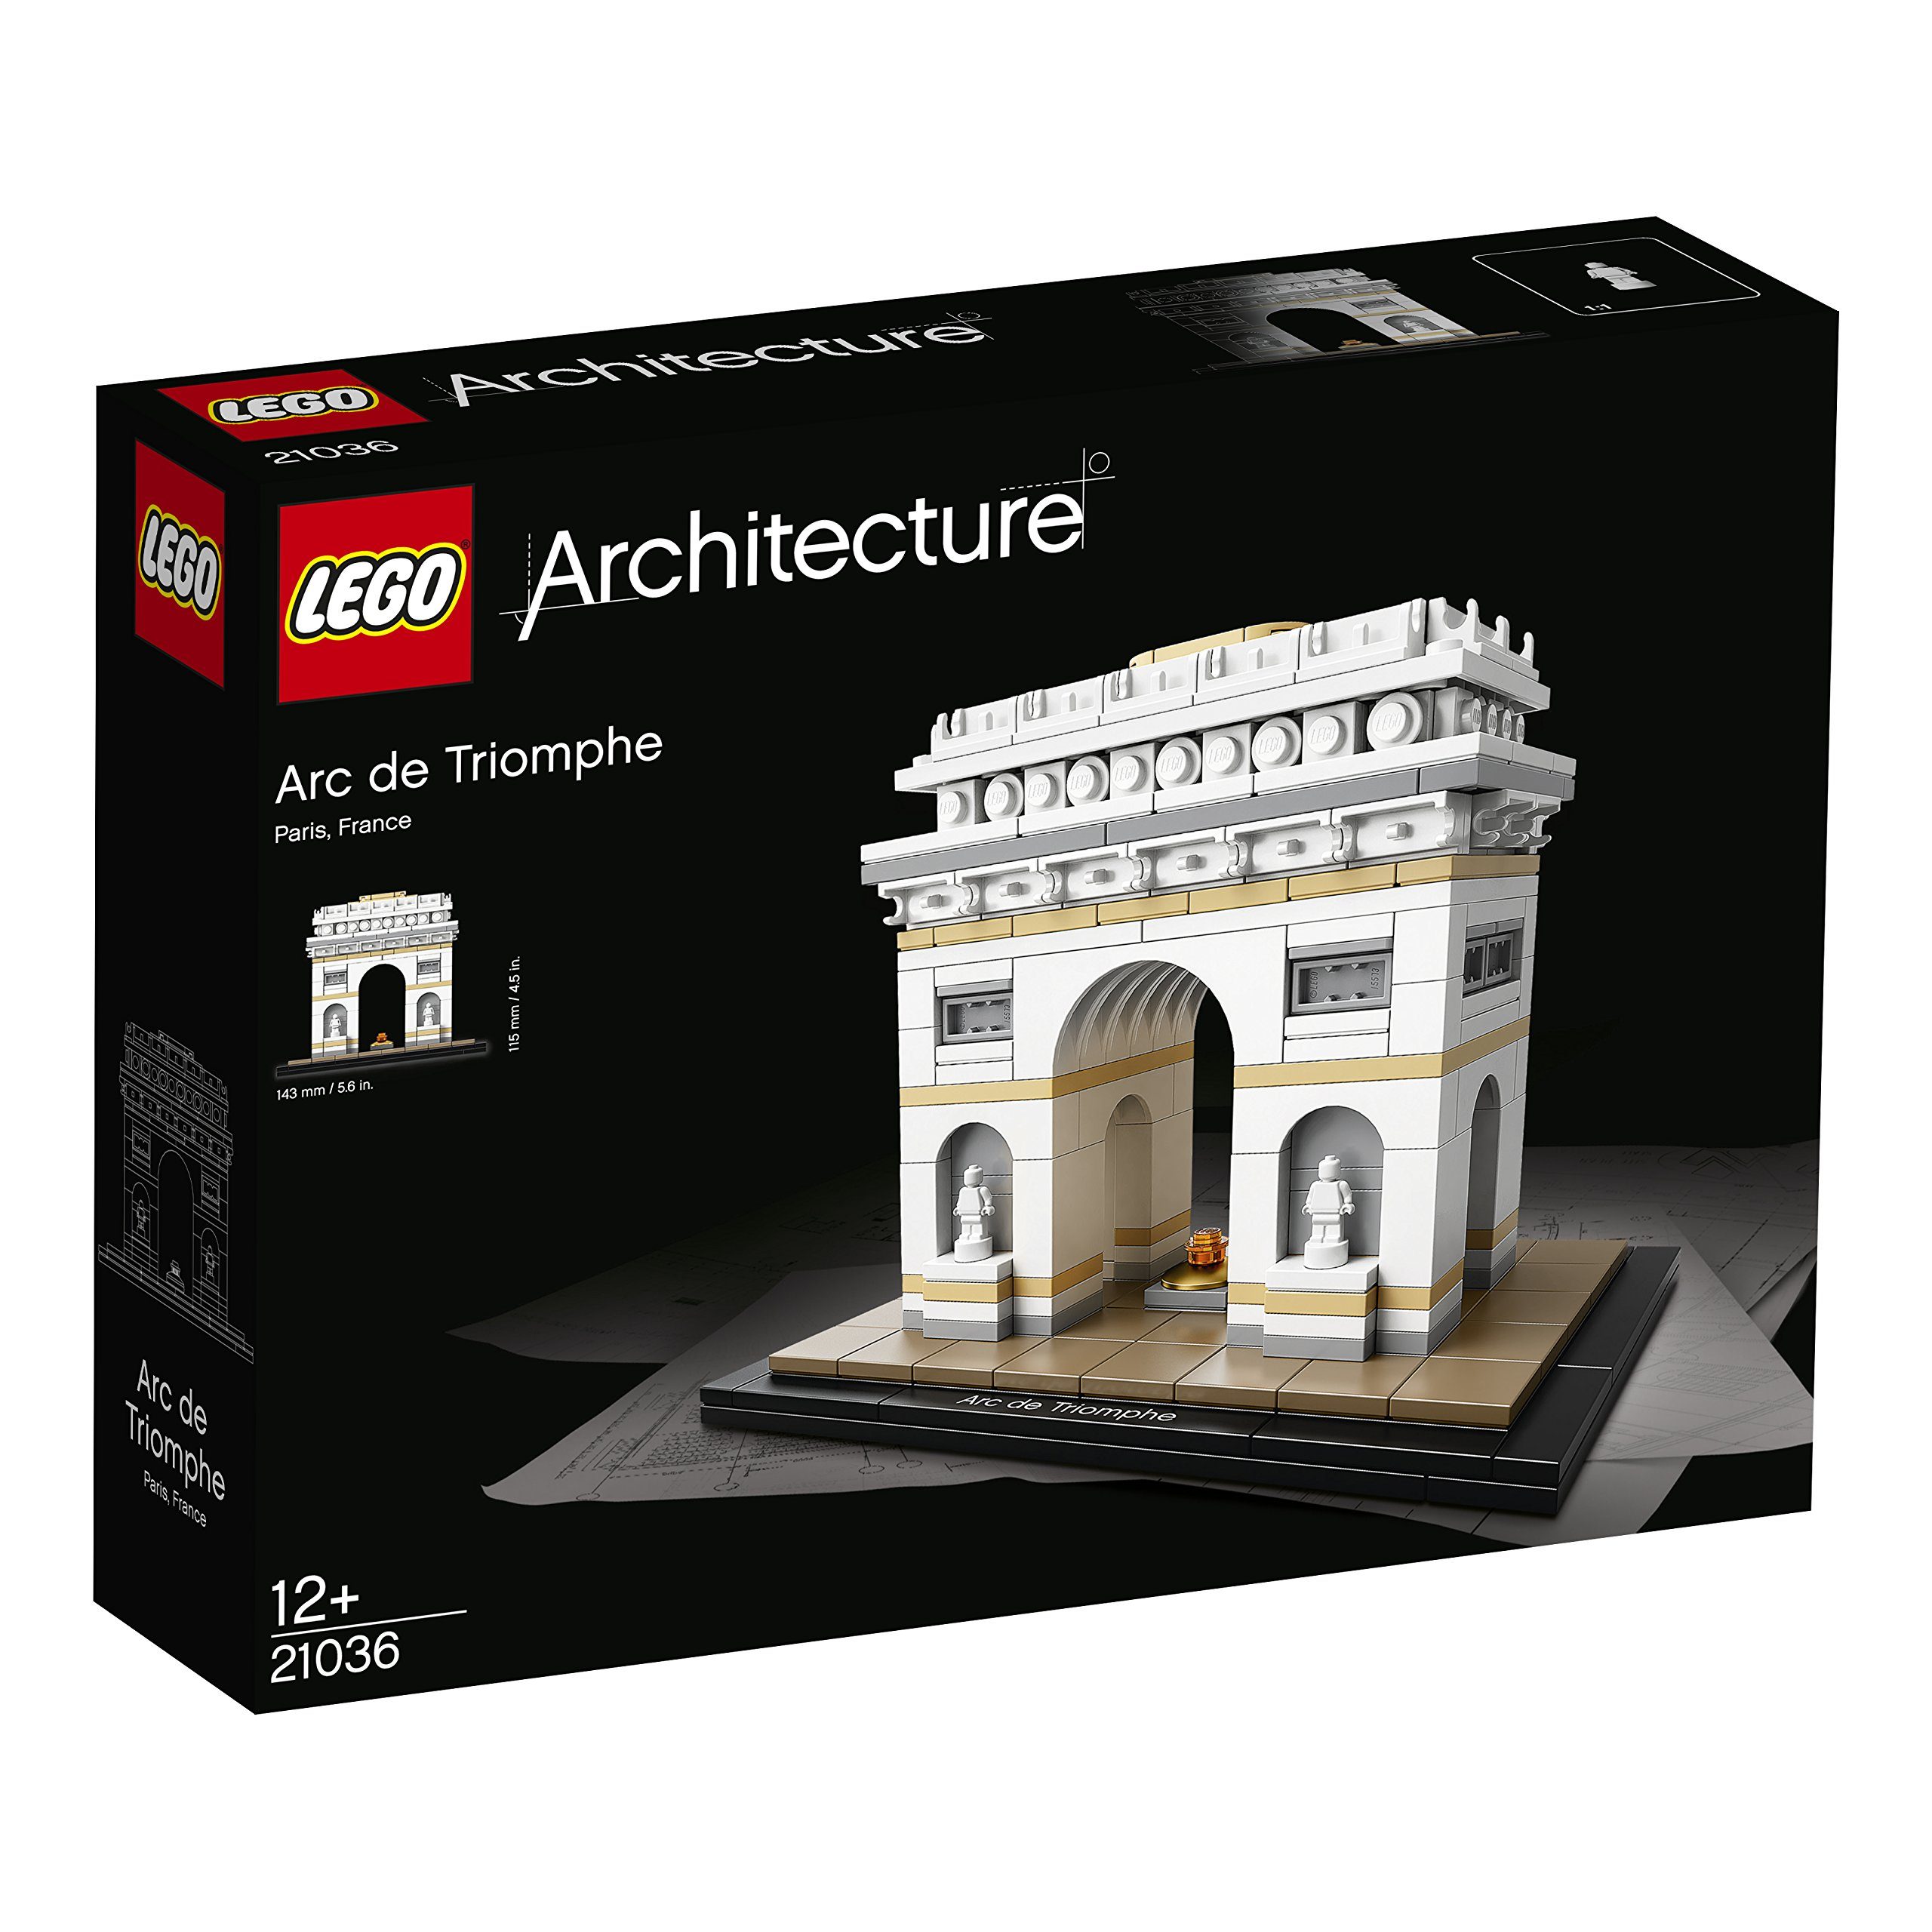 Lego Sets for Adults Architecture Models Arc de Triomphe with